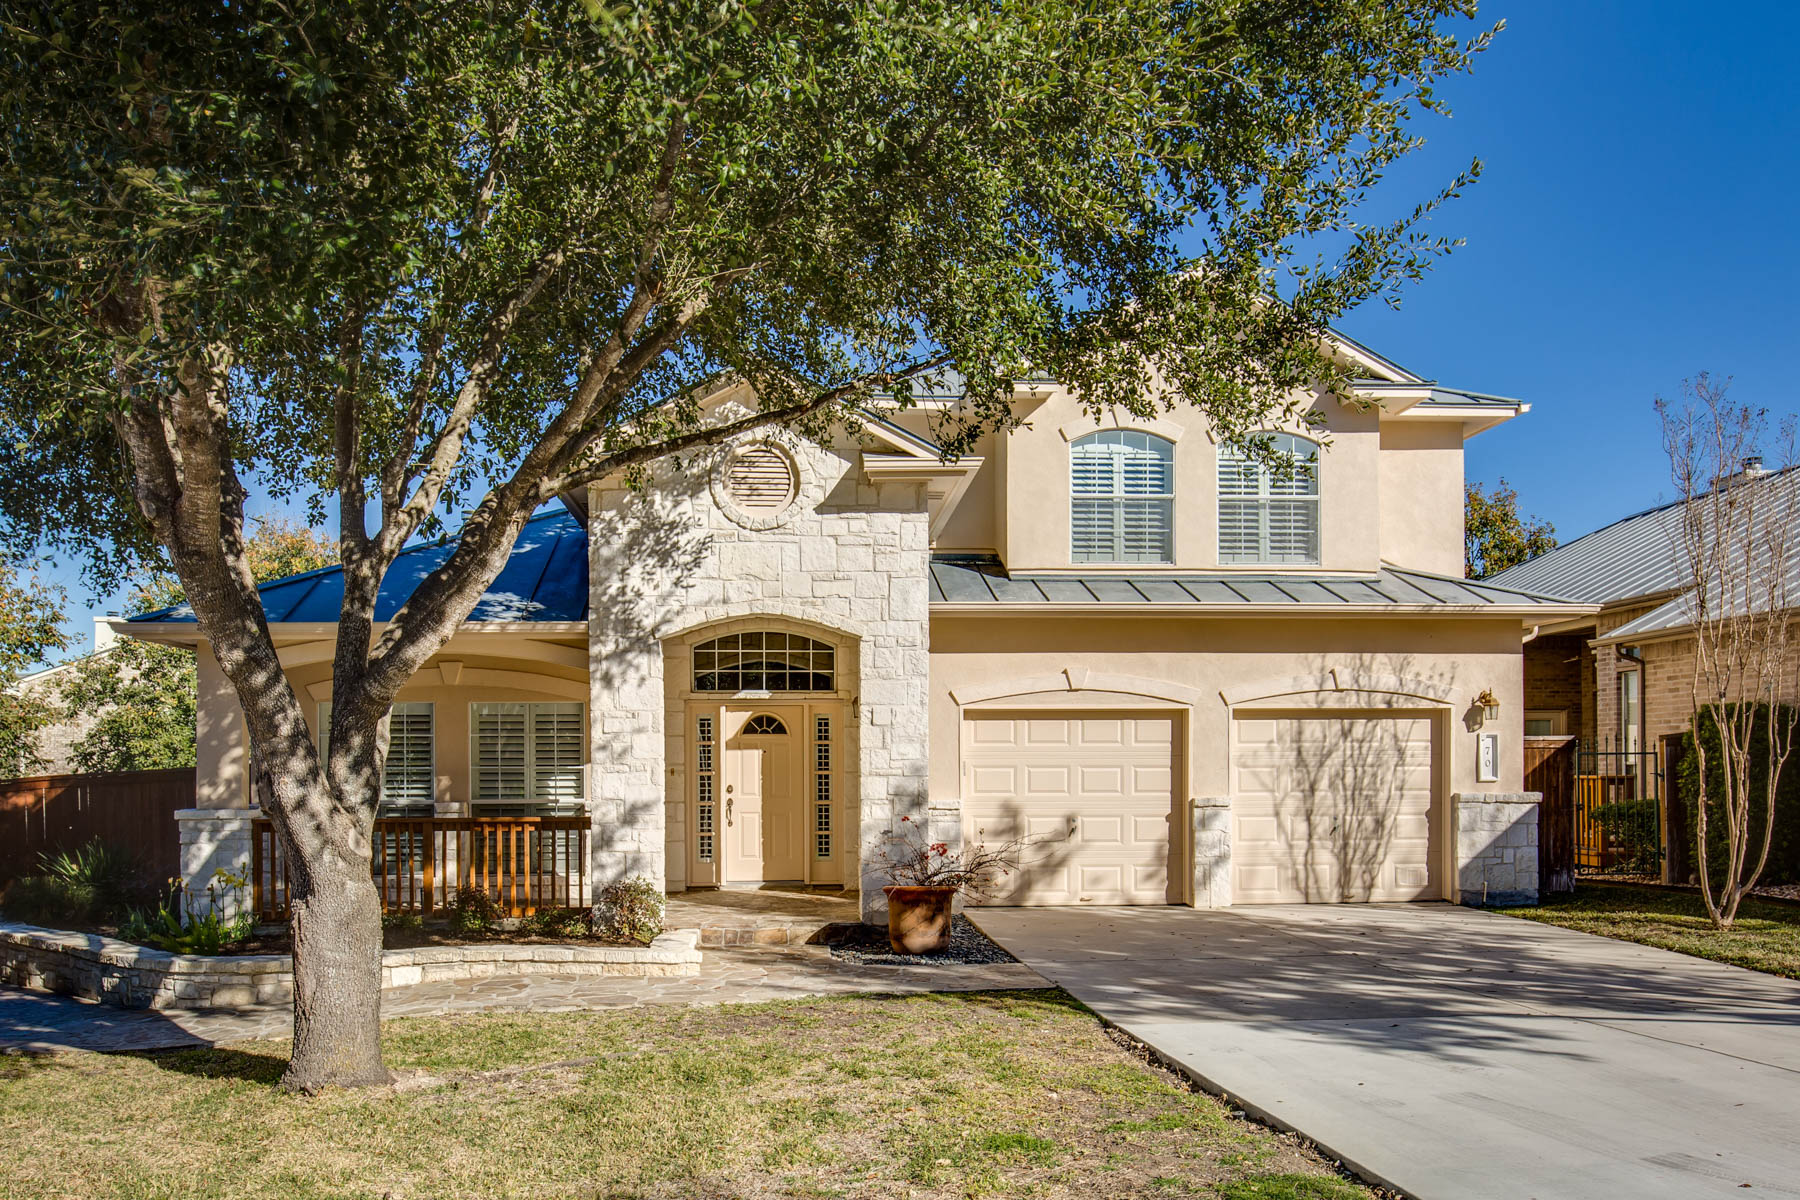 Single Family Home for Sale at Beautiful Home in Oakwell Farms 70 Fonthill Way San Antonio, Texas 78218 United States